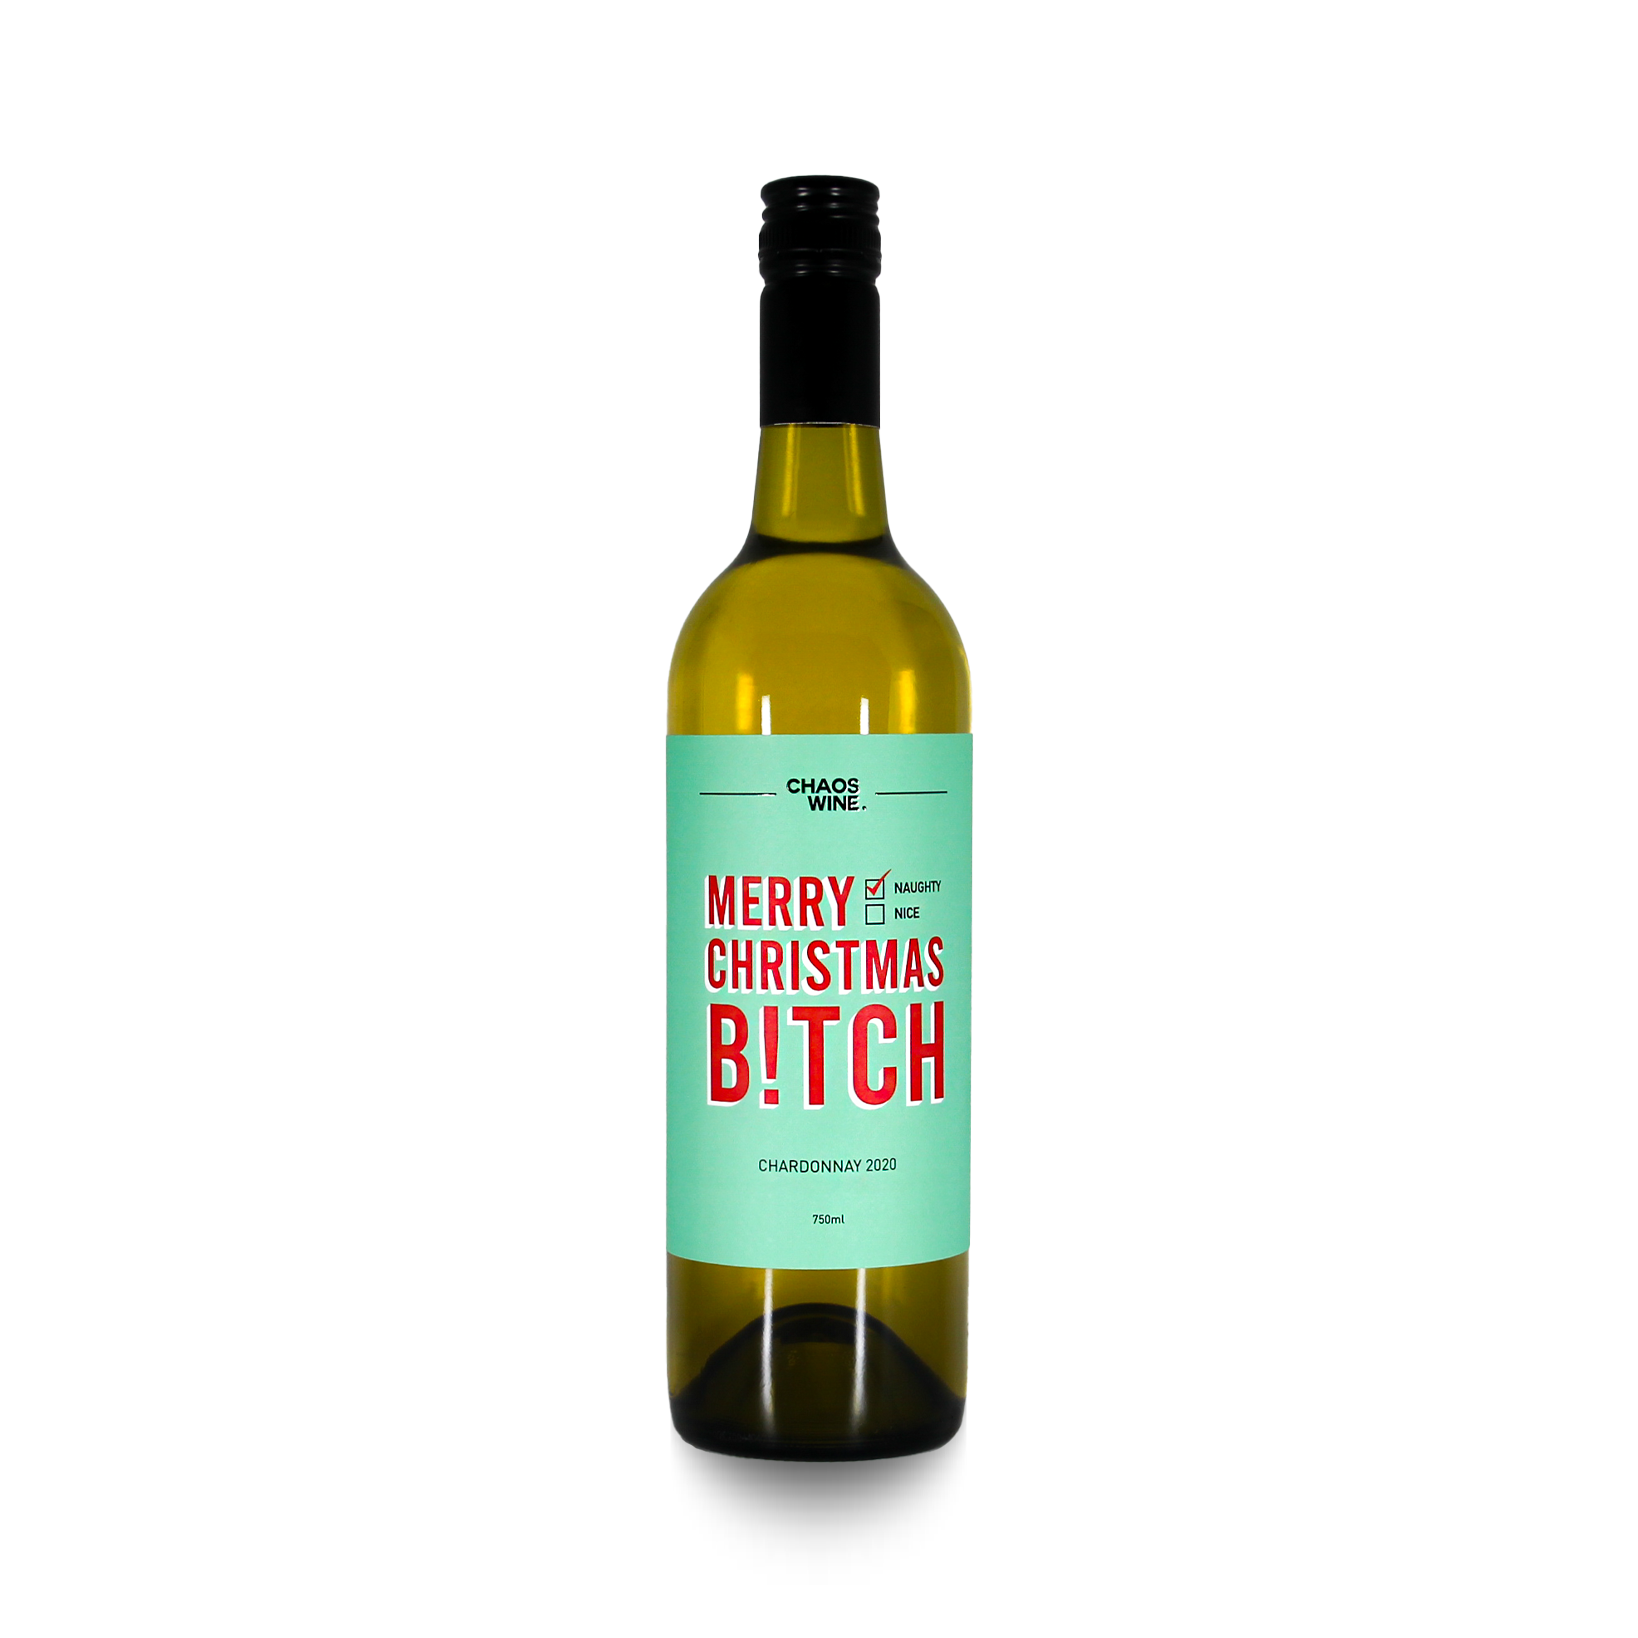 Merry Christmas Bitch wine